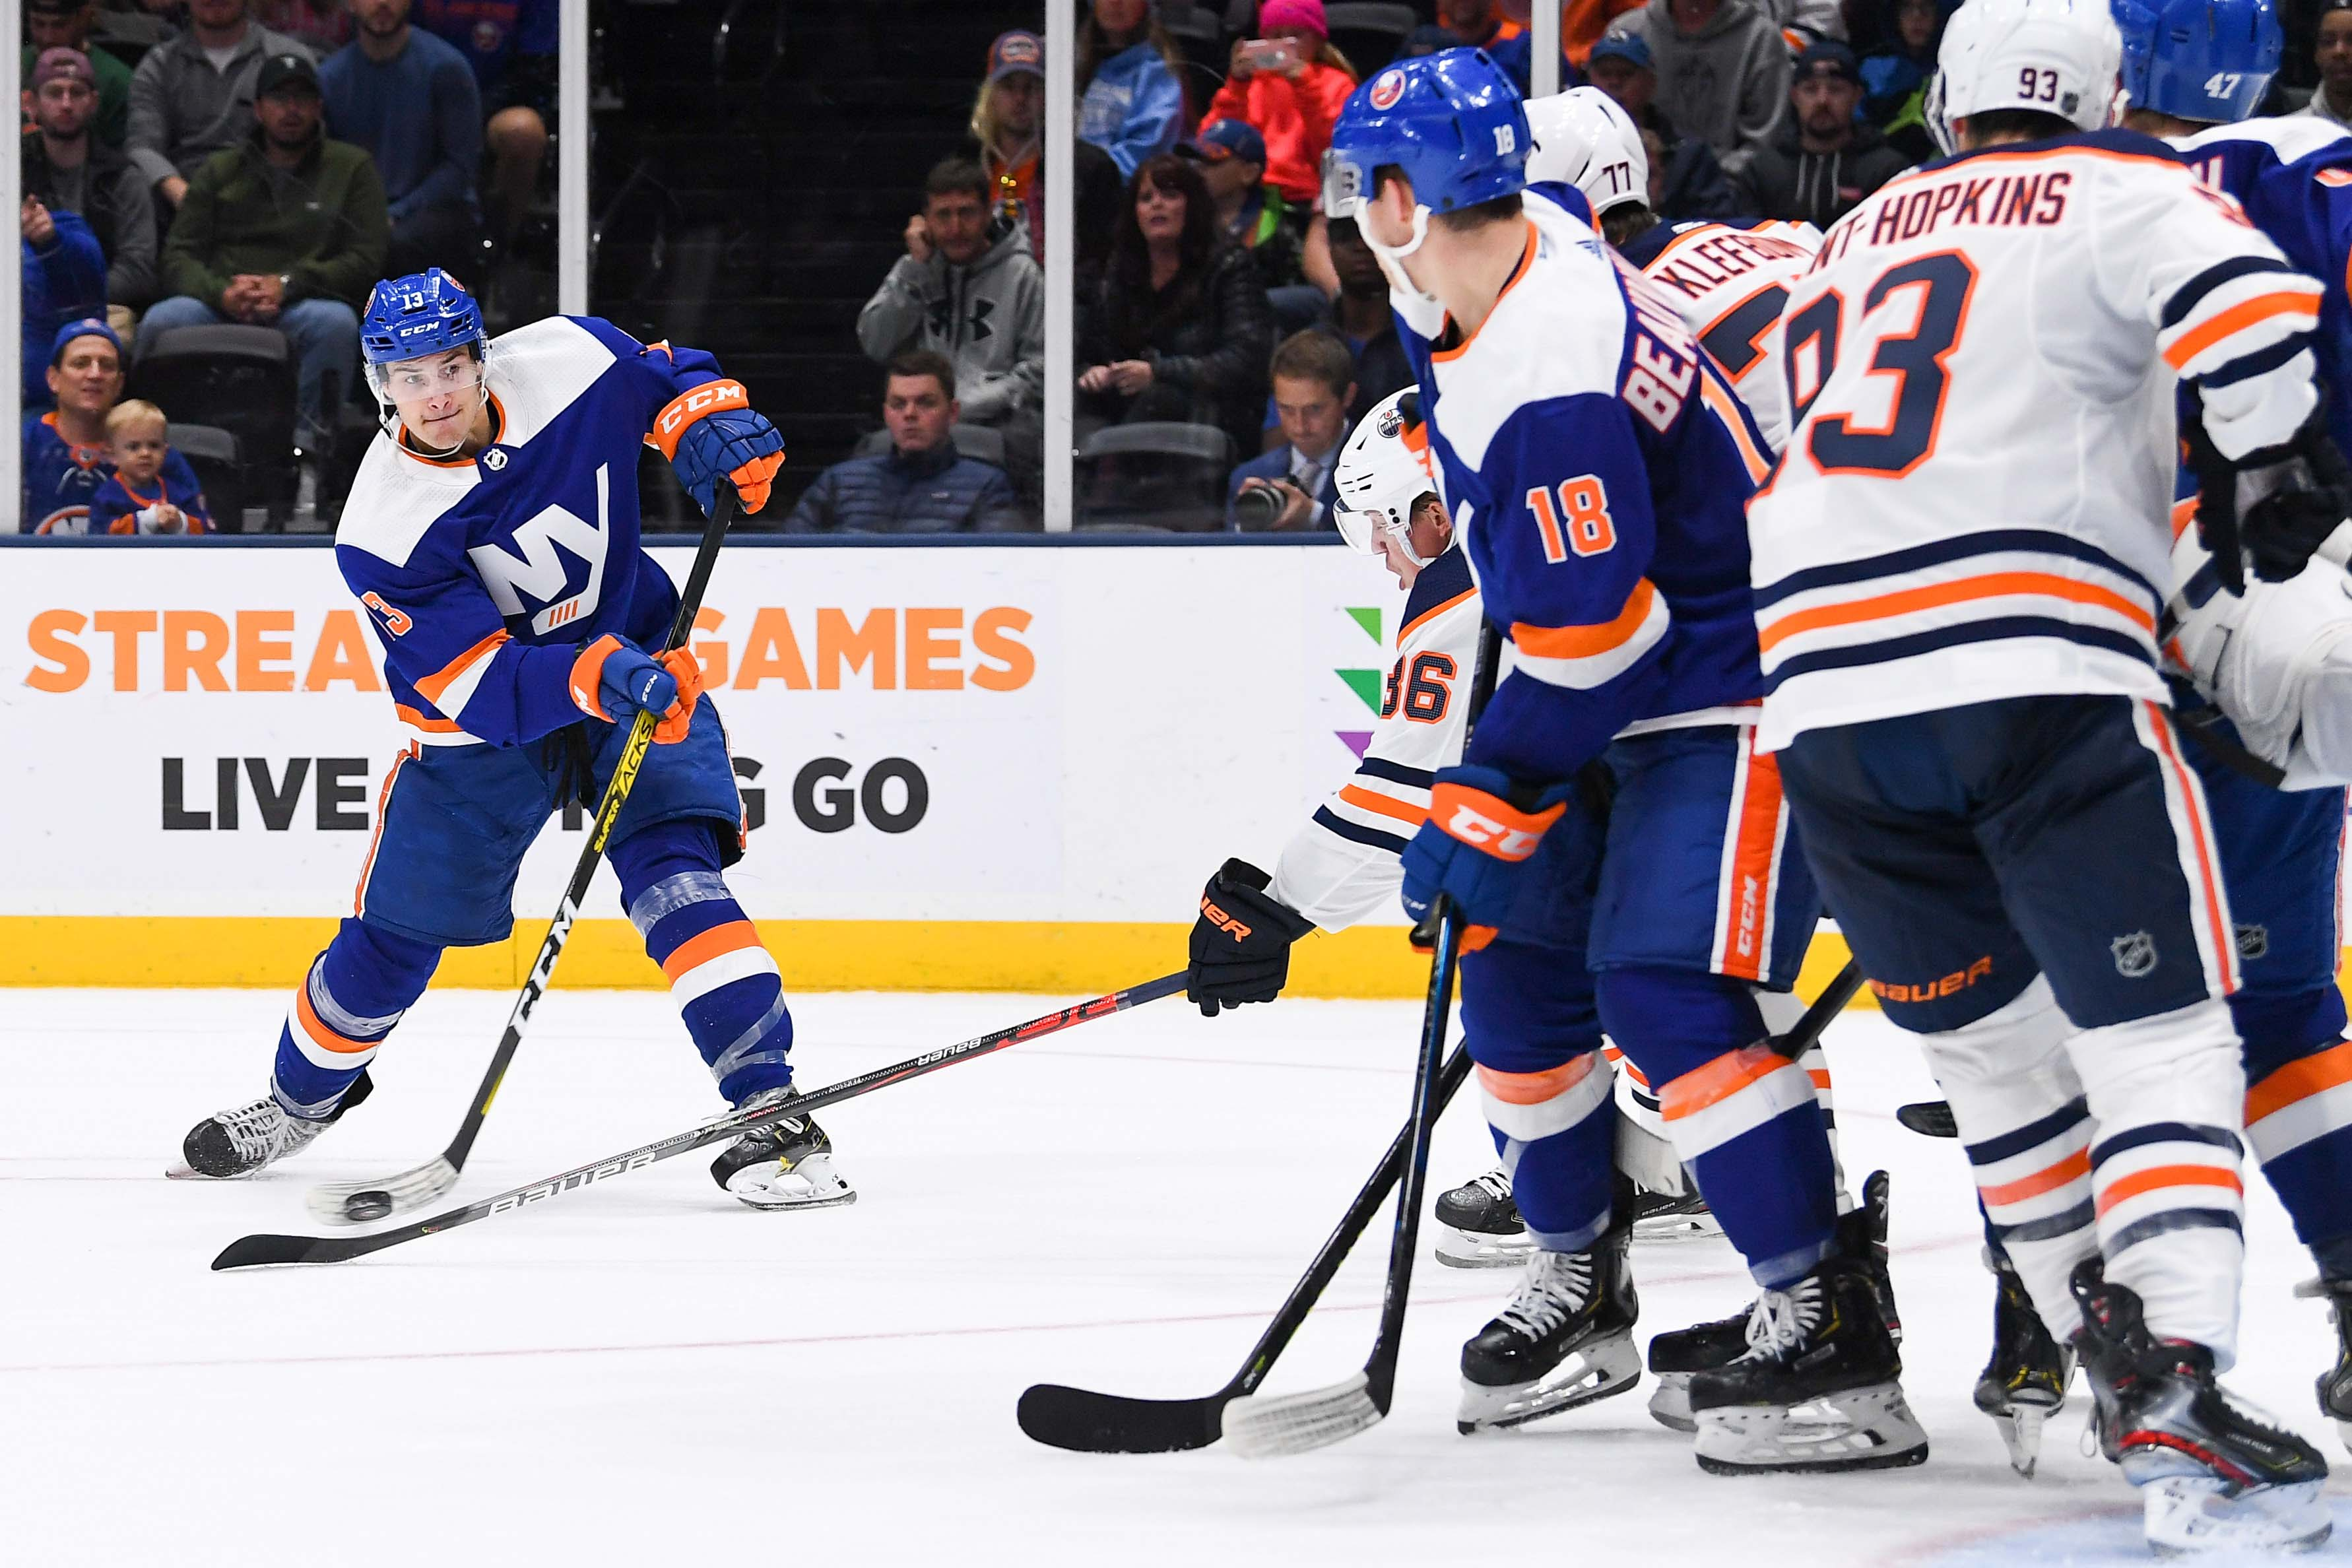 Oct 8, 2019; Uniondale, NY, USA; New York Islanders center Mathew Barzal (13) attempts a shot against the Edmonton Oilers during the second period at Nassau Veterans Memorial Coliseum. Mandatory Credit: Dennis Schneidler-USA TODAY Sports